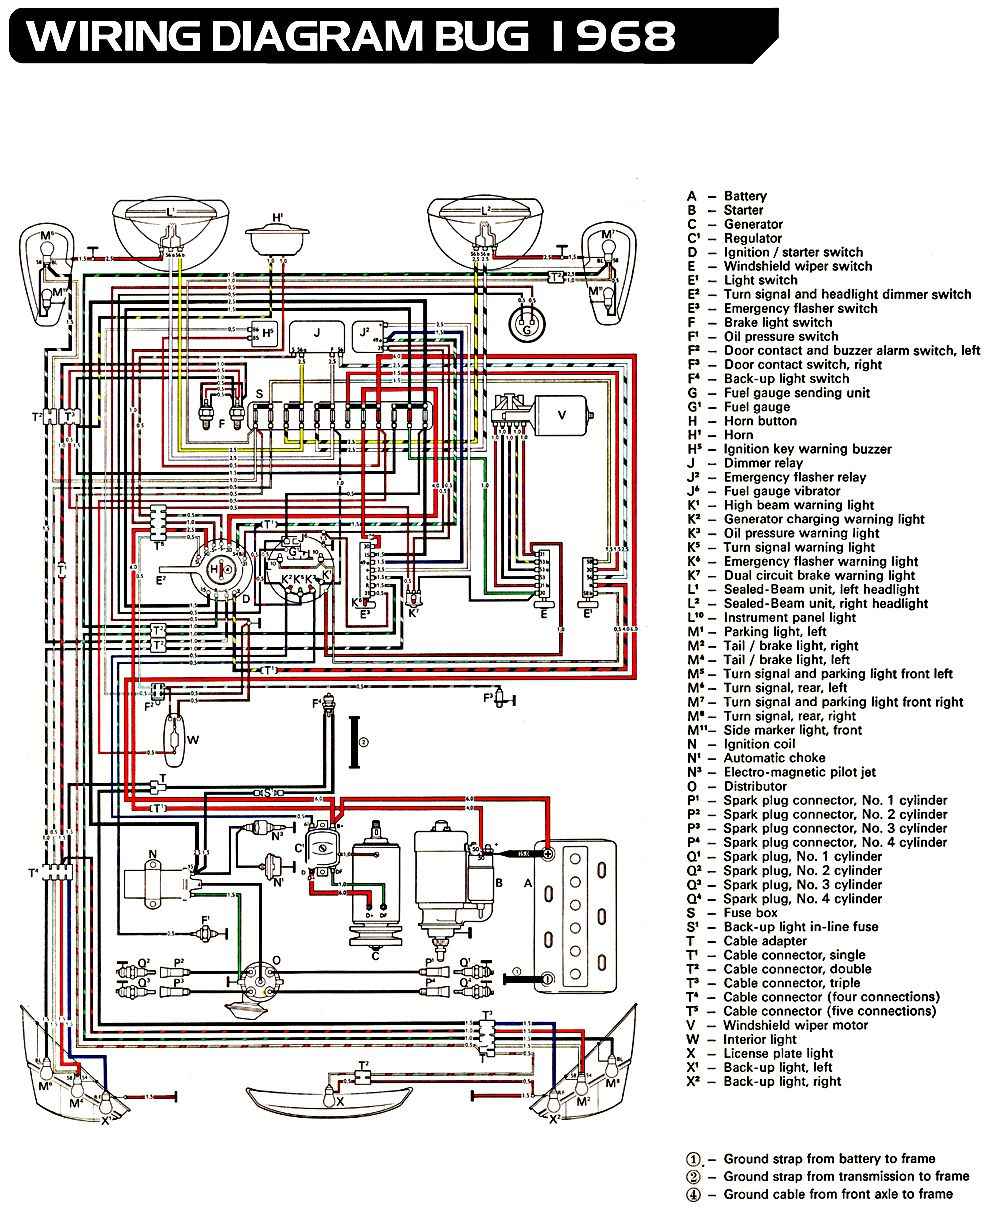 vw bug ignition wiring diagram 73 vw wiring diagram free vw rh pinterest com vw beetle diagram 2012 vw beetle diagram 2012